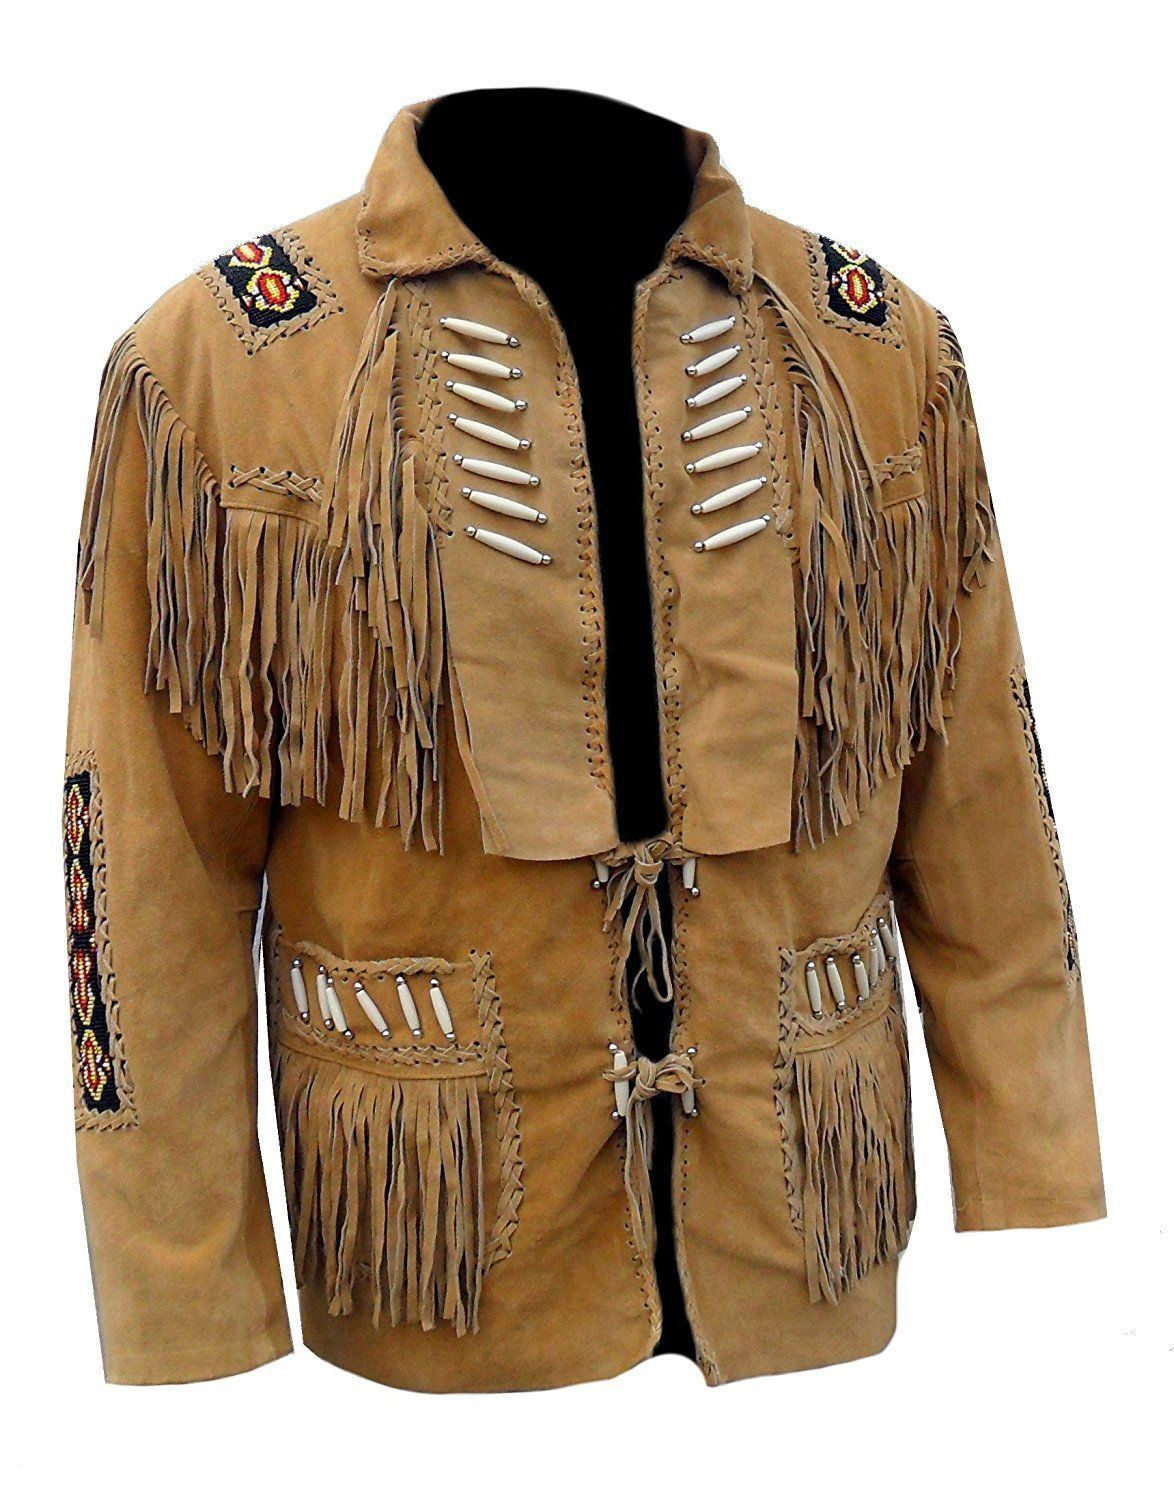 Mens Native American Cowboy Suede Leather Jacket With